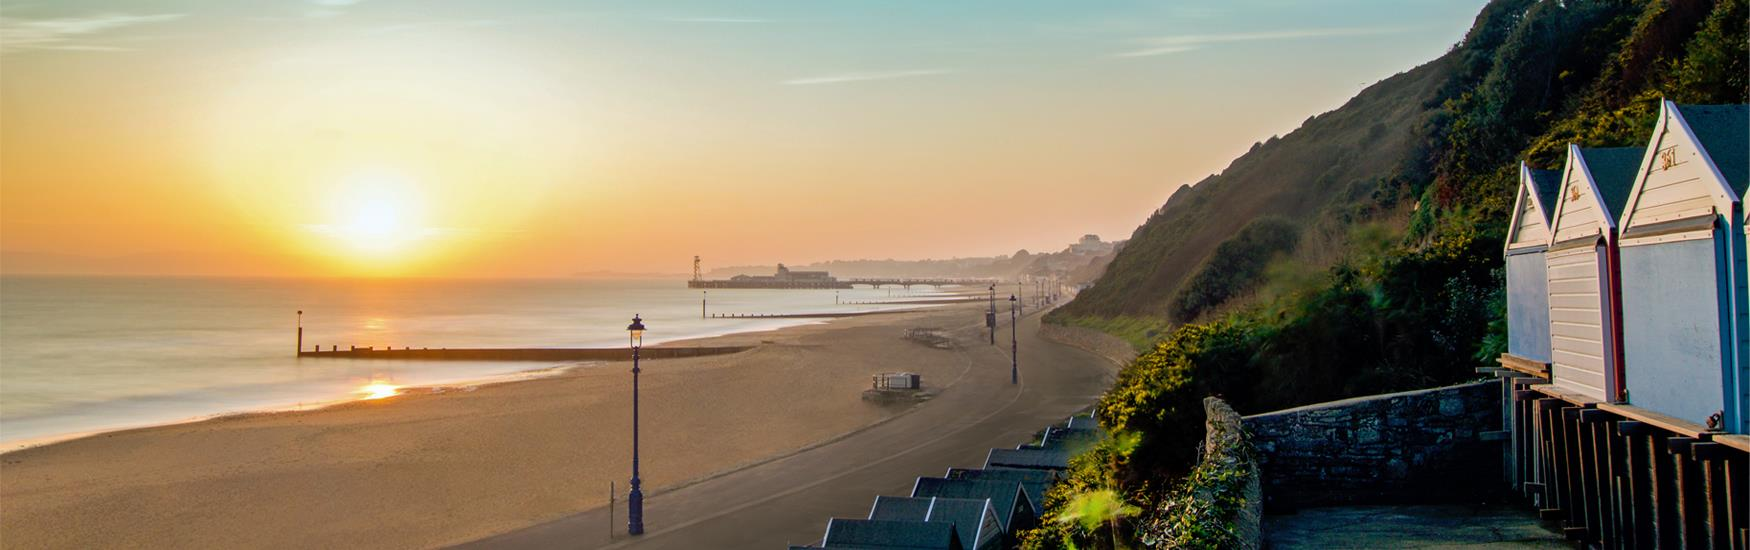 Bournemouth - Your Official Bournemouth Guide